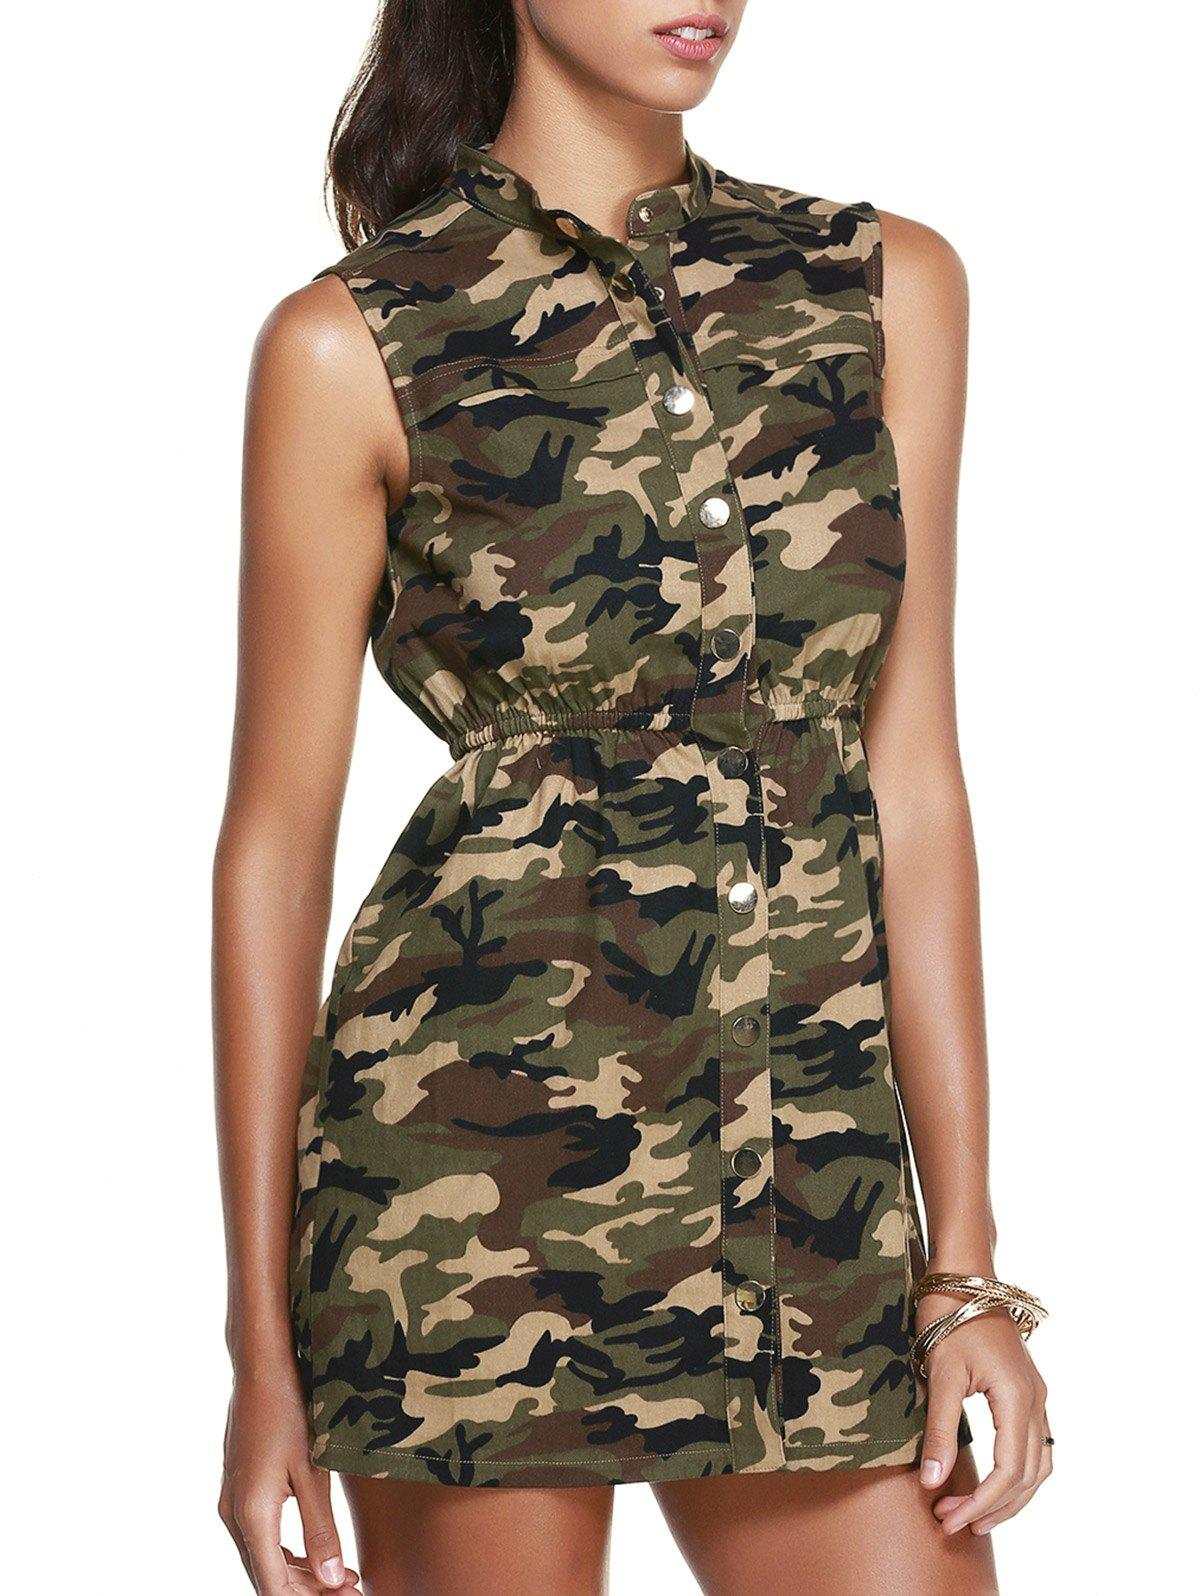 Casual Women's Stand Collar Sleeveless Camo Dress - L CAMOUFLAGE